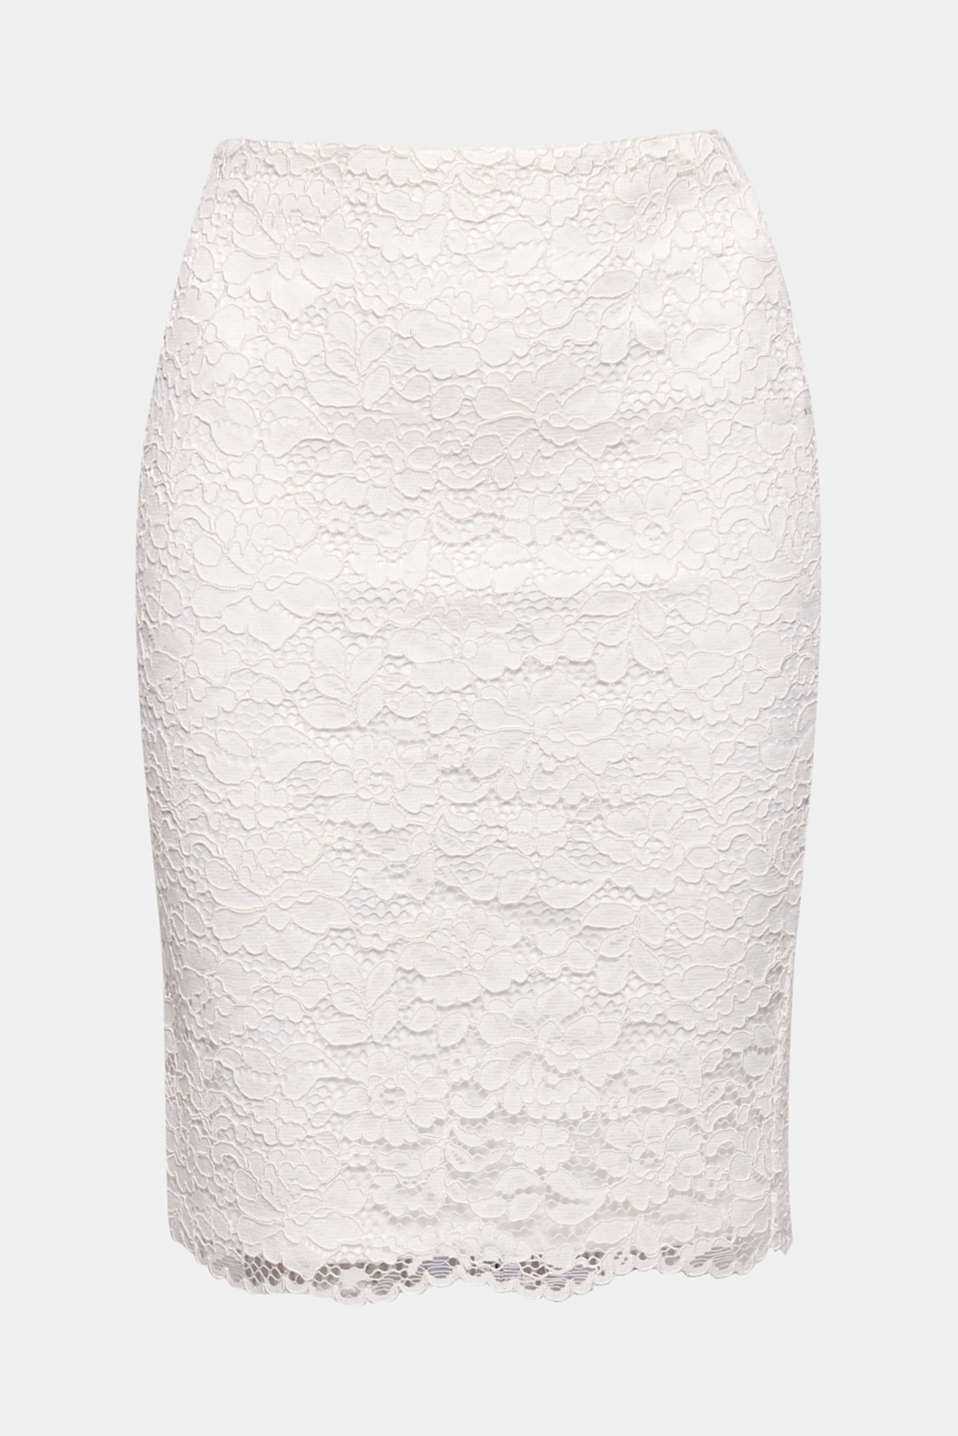 The narrow fit and floral lace in a 3D look give this sheath skirt its feminine elegance!